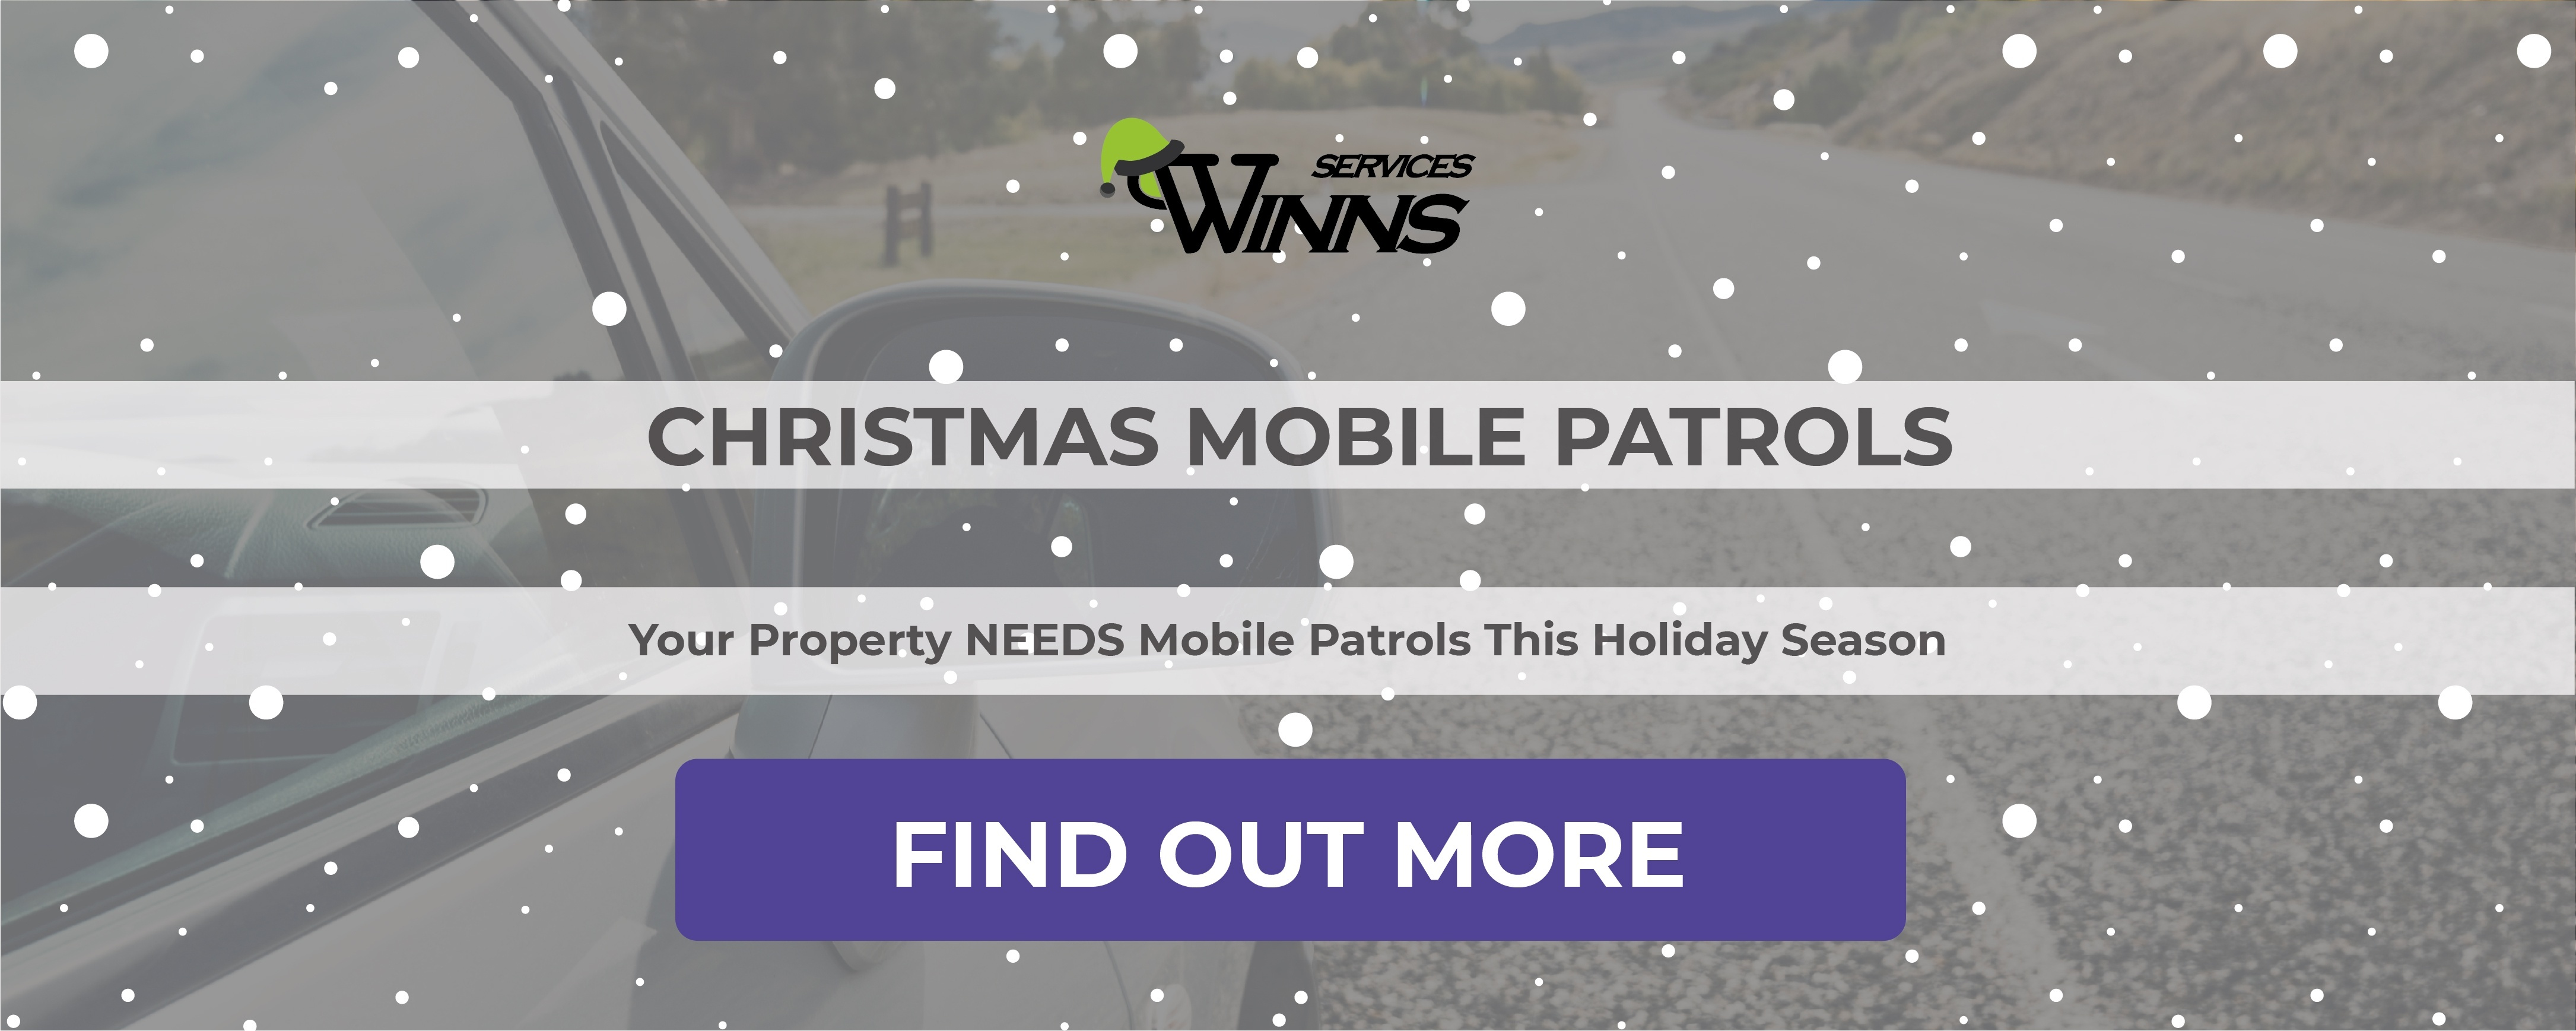 WINNS Christmas Security Services - Mobile Patrols